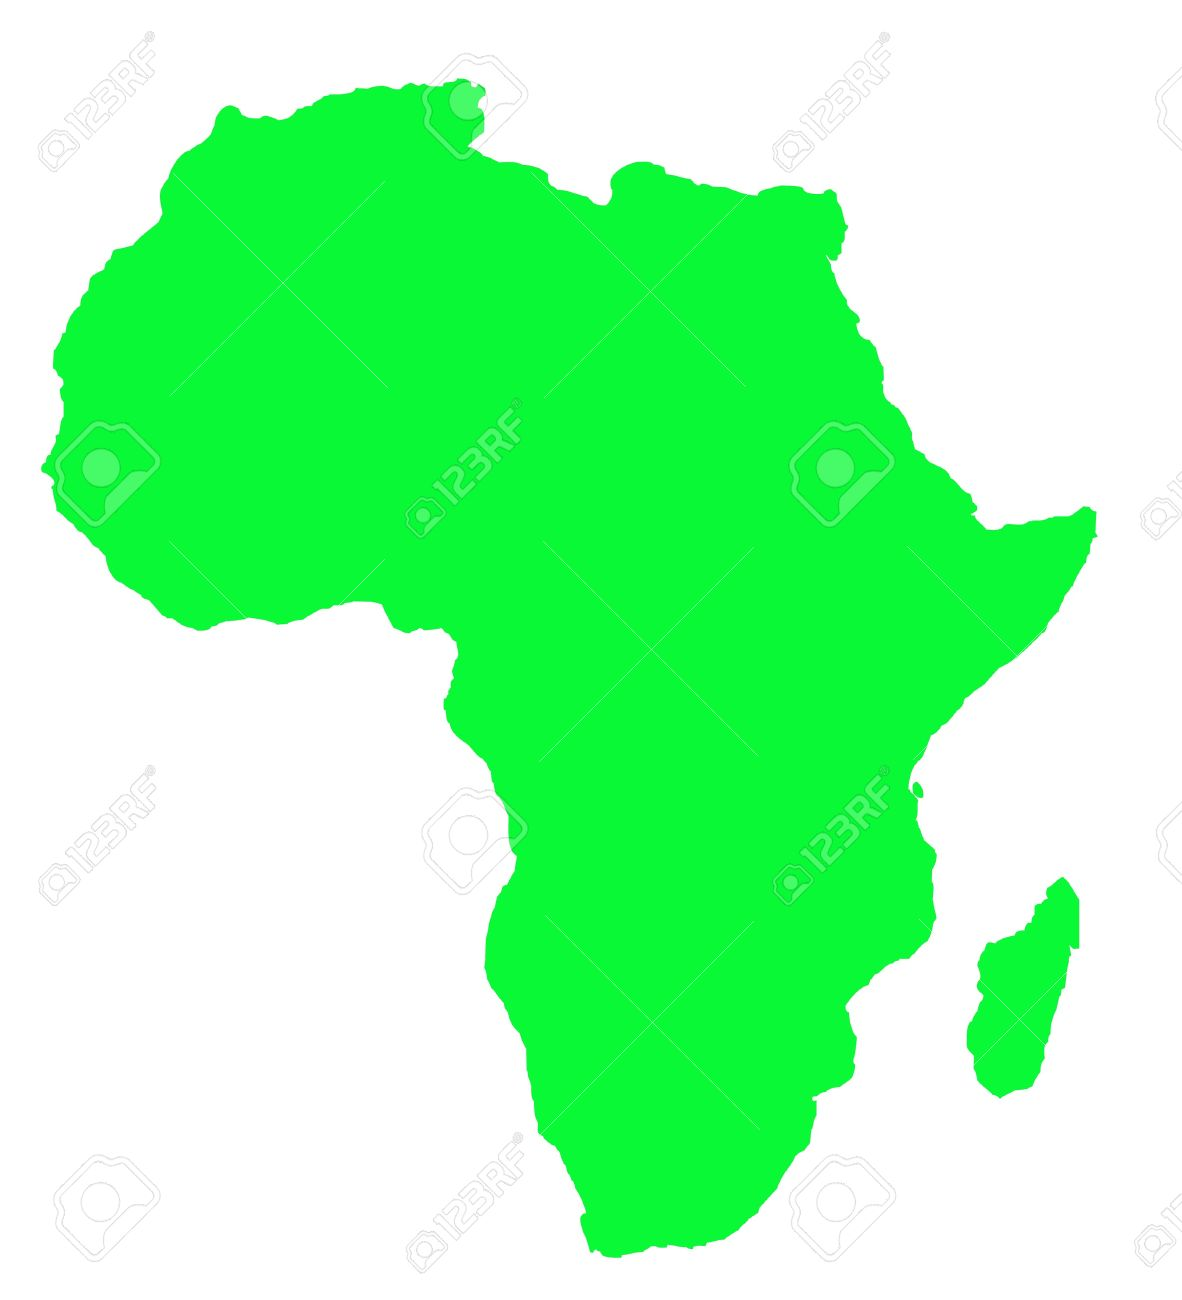 Outline Map Of Africa Continent In Green, Isolated On White